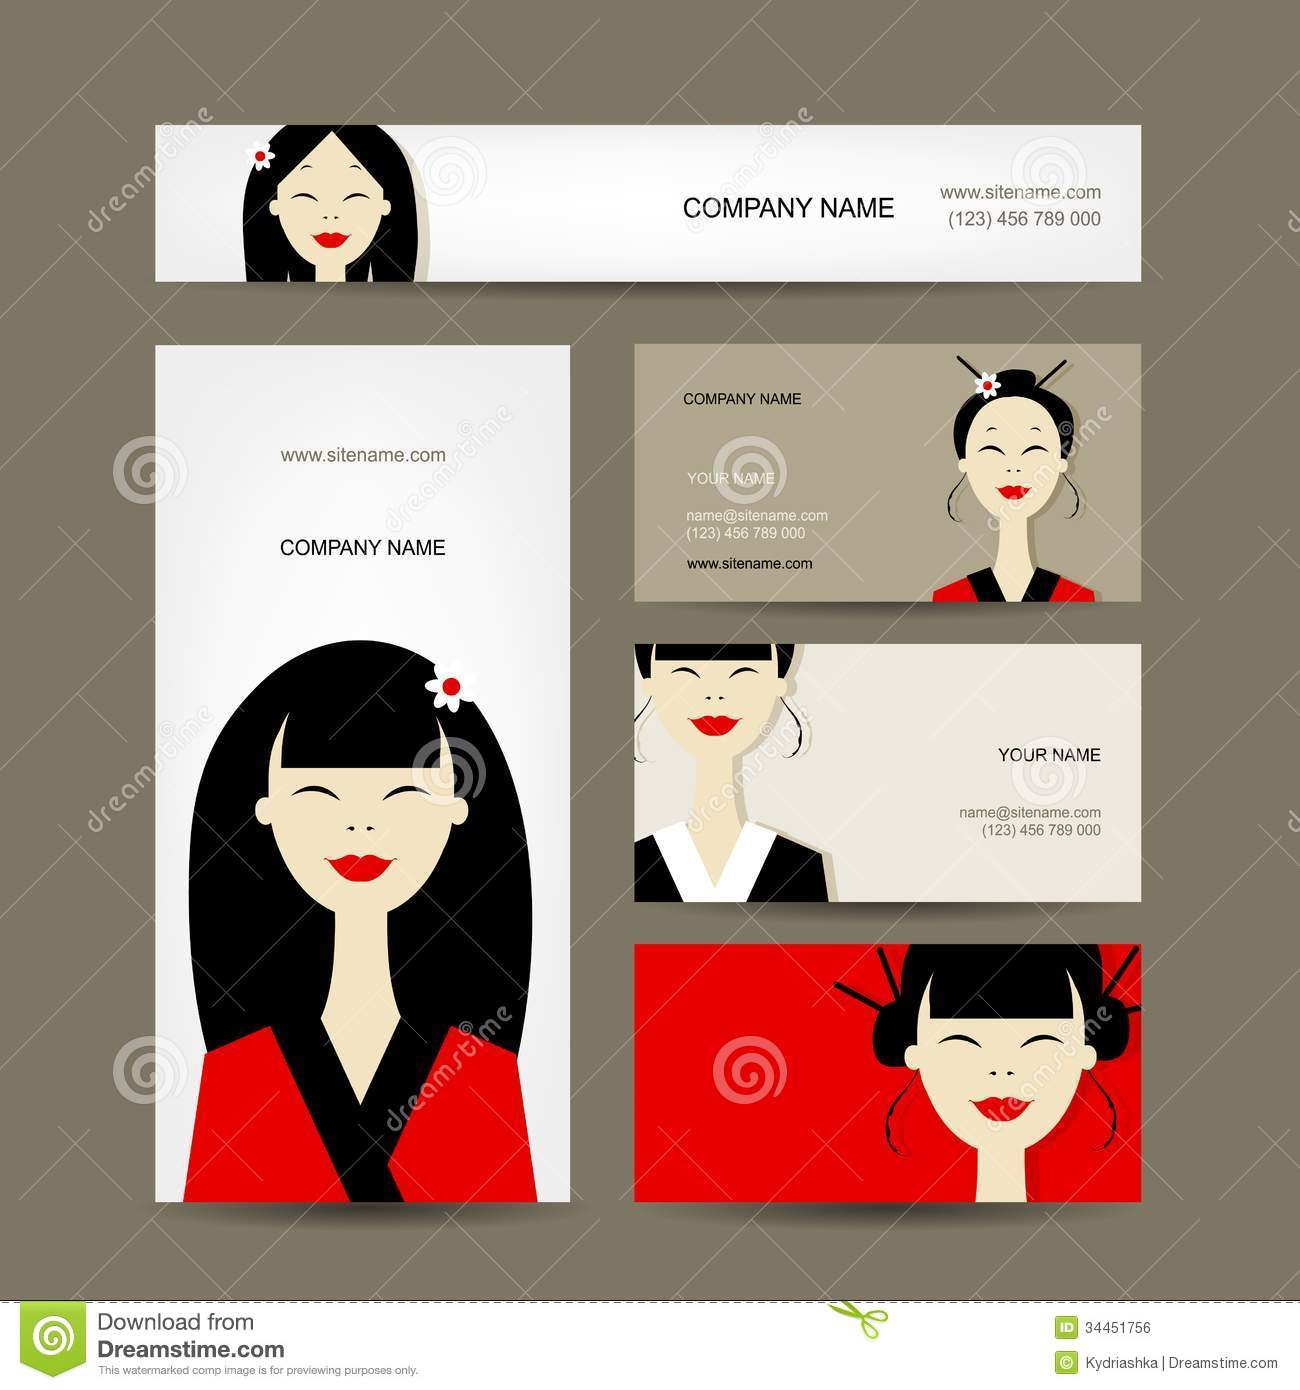 Business Cards Design With Asian Girls Stock Vector - Image: 34451756